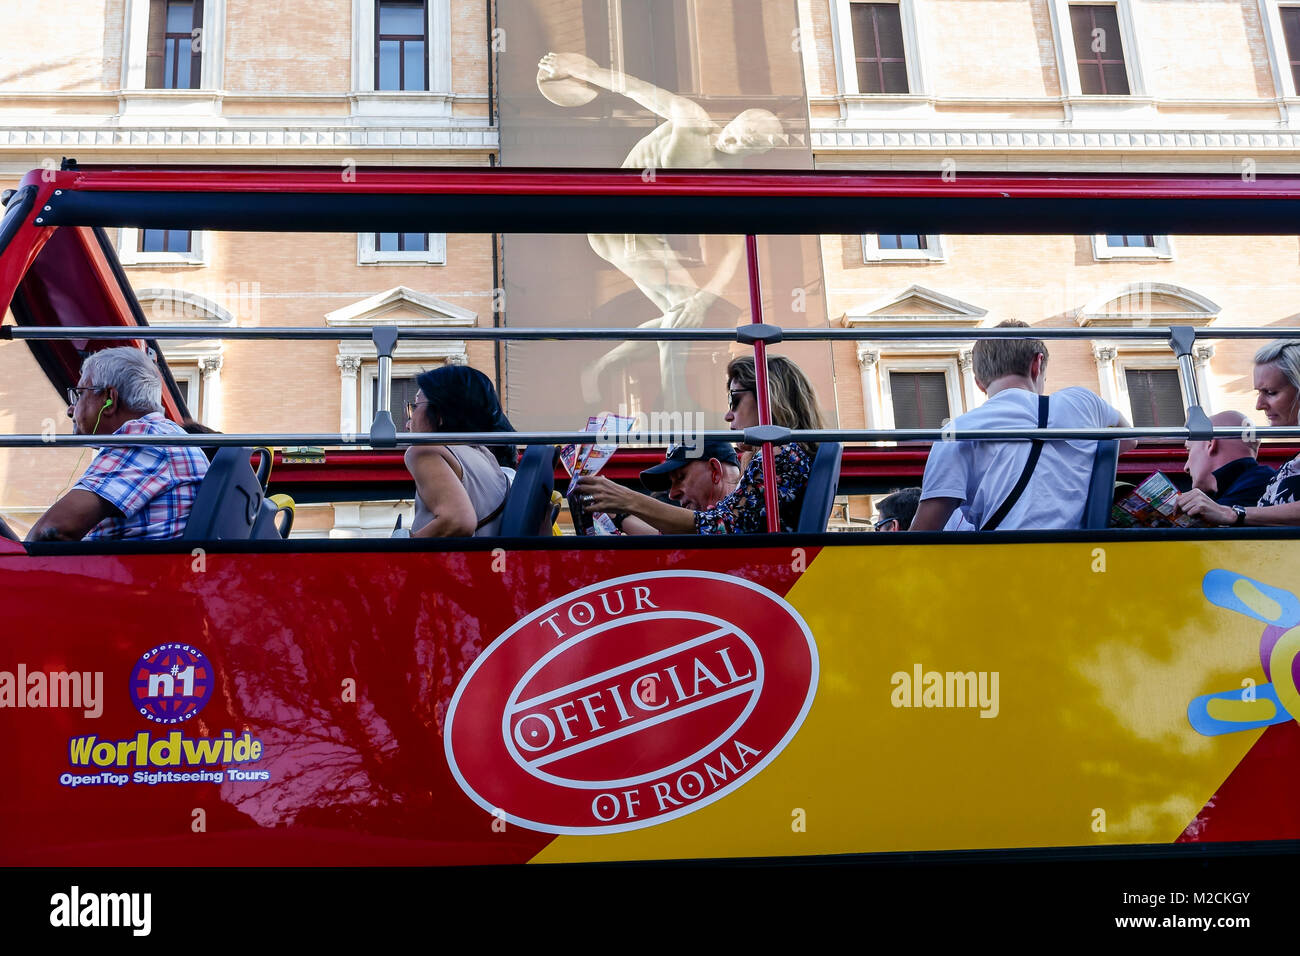 Tourist sightseeing red double decker bus passing in front of Palazzo Massimo alle Terme, National Roman Museum. - Stock Image